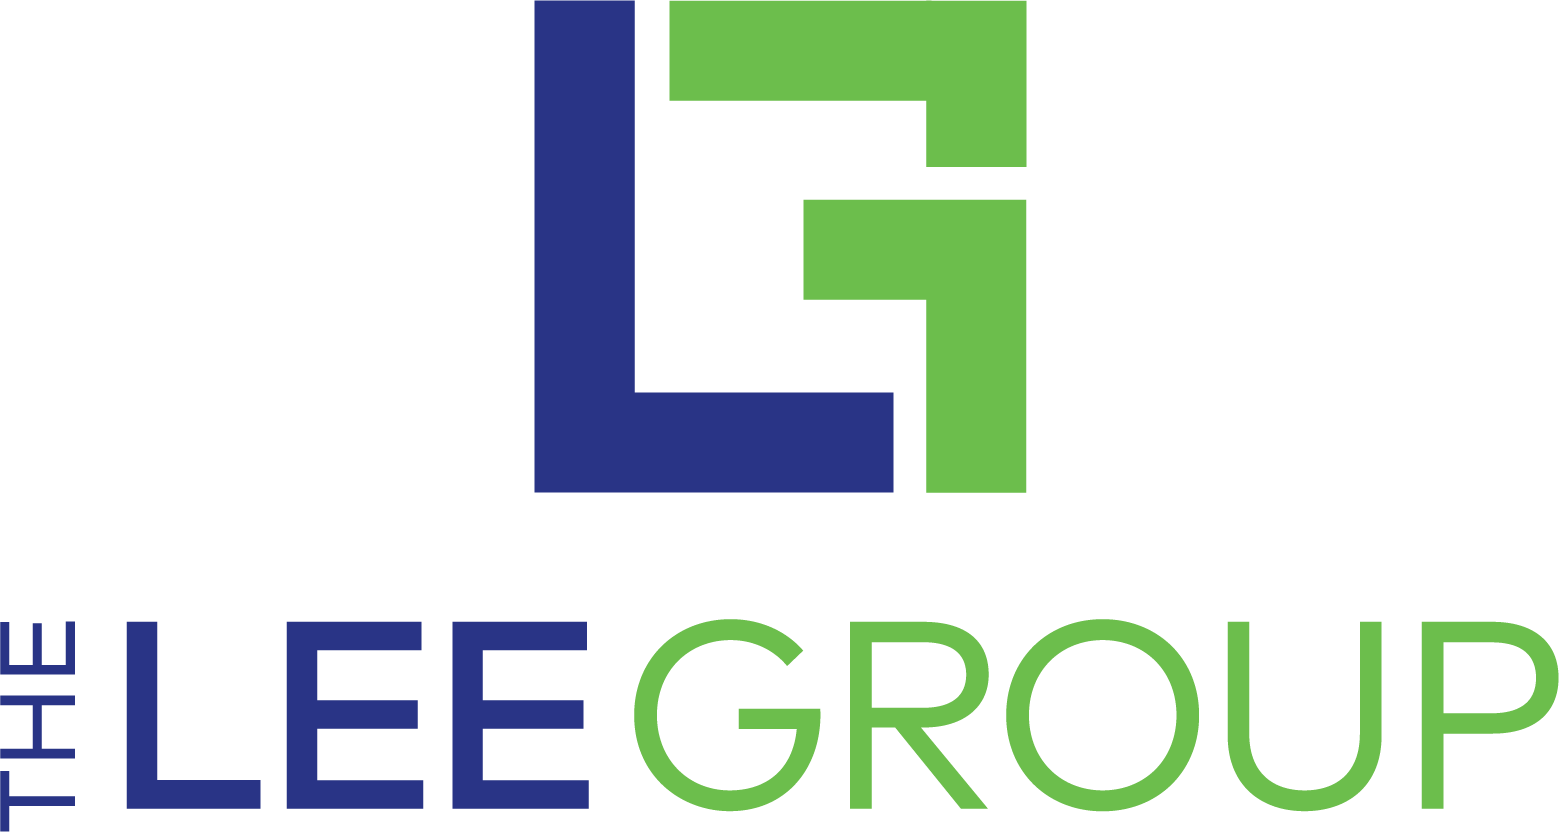 The Lee Group